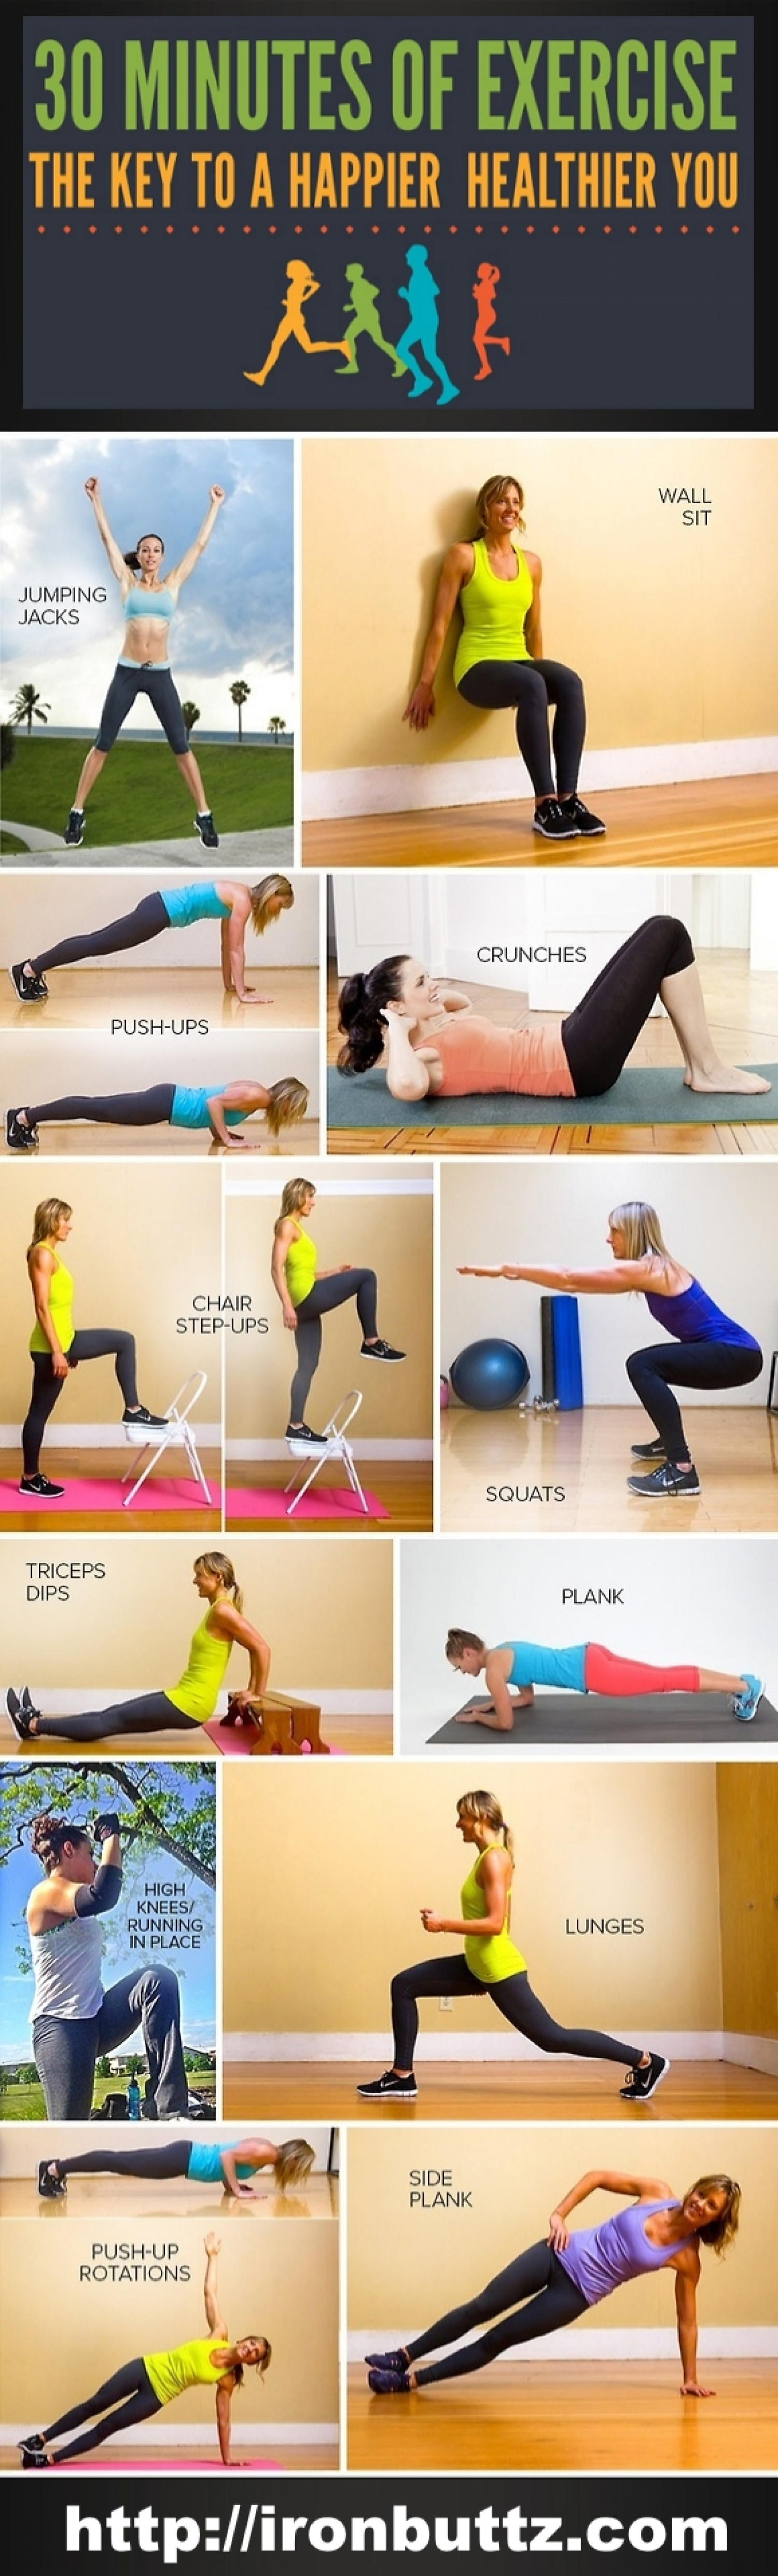 30 Minutes Of Exercise Infographic